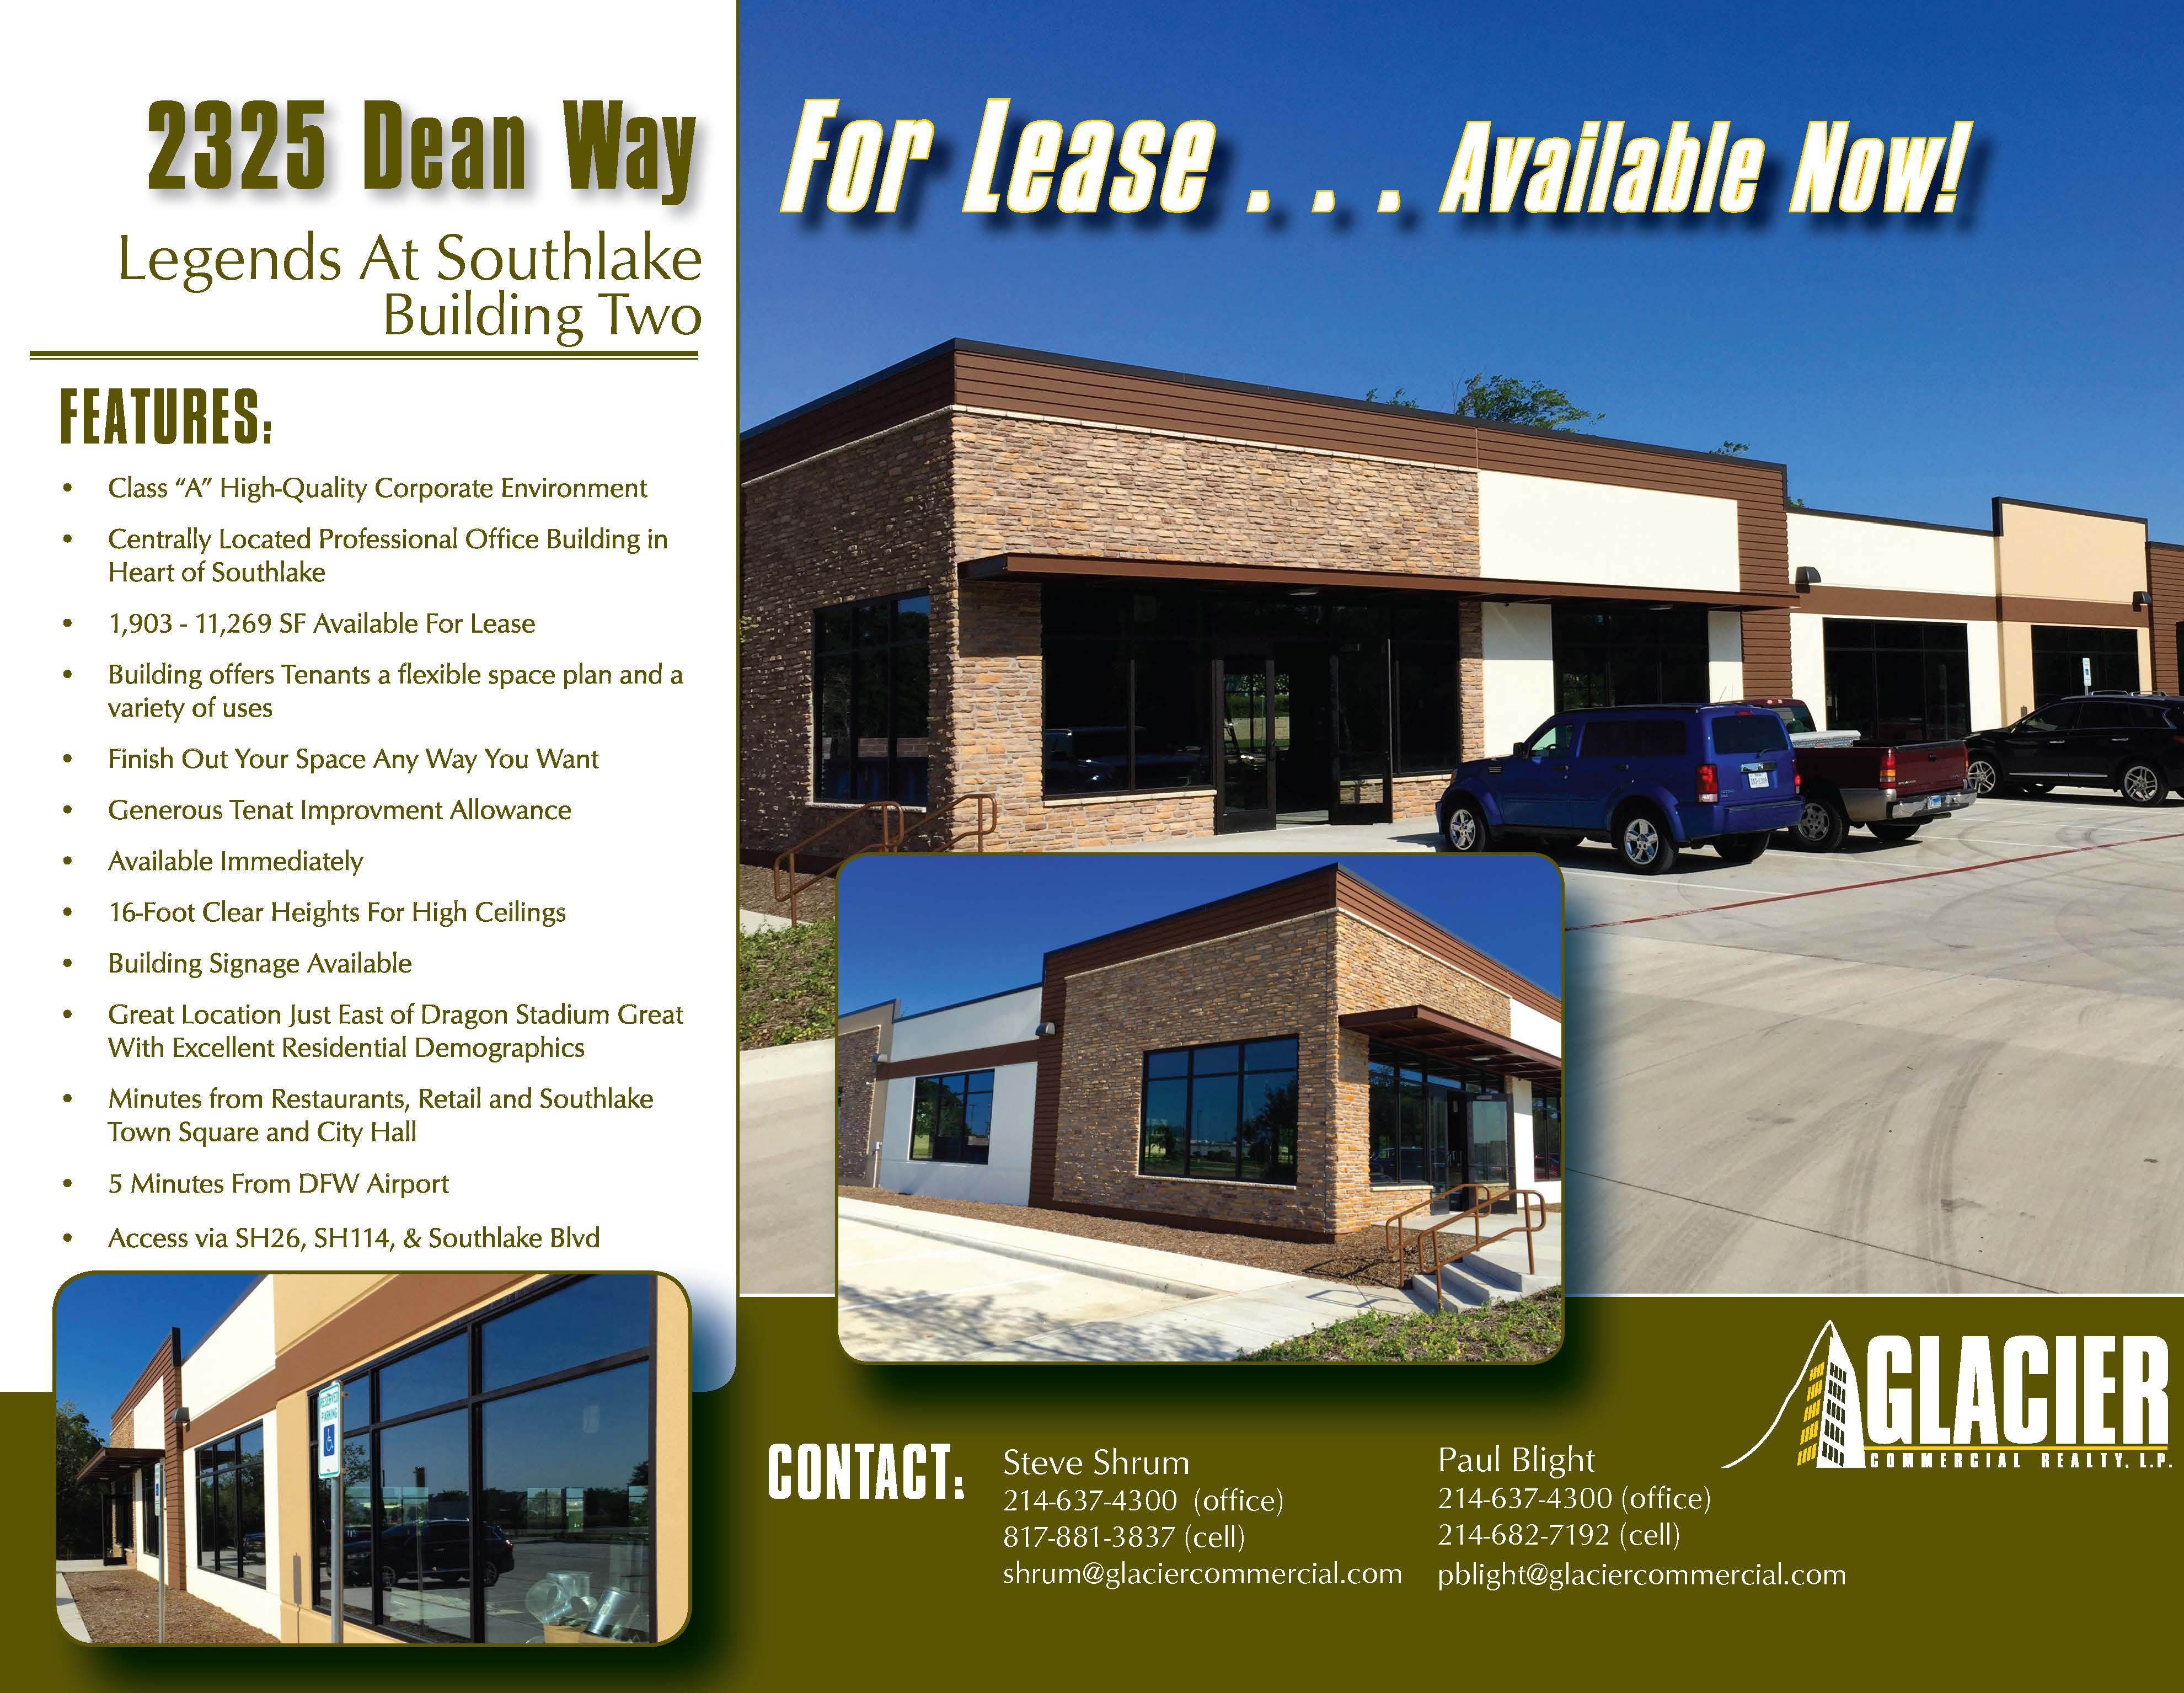 http://glaciercommercial.s3.amazonaws.com/production/photos/images/8486/original/2325_Dean_Way_Legends_At_Southlake_For_Lease_Flyer_Page_1.jpg?1437427722